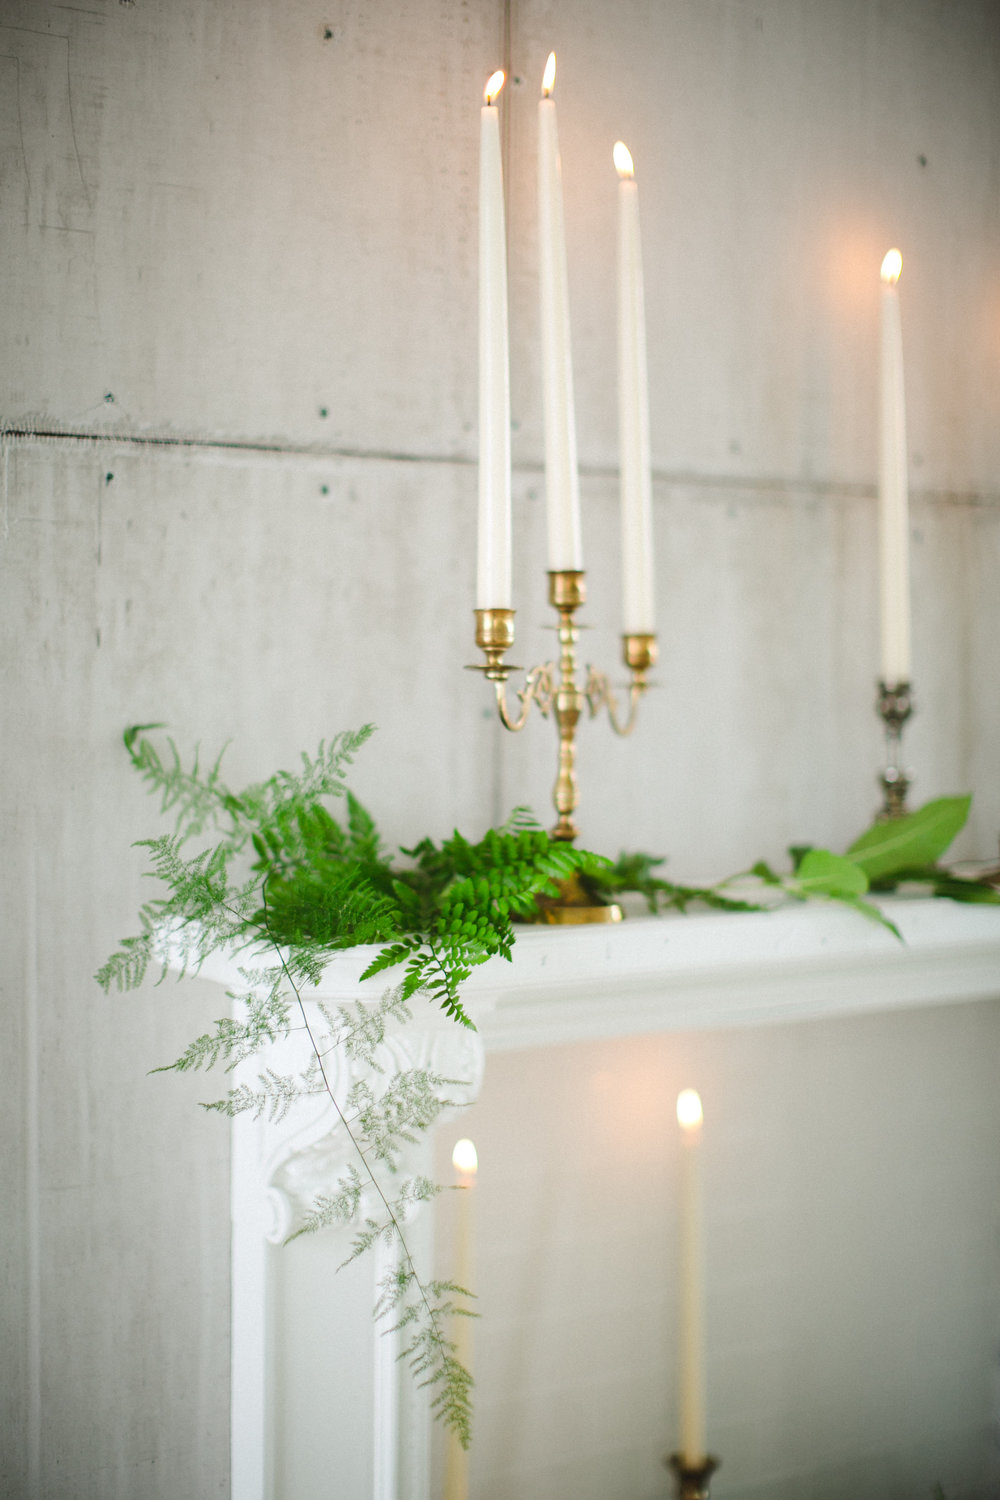 by Aimee Jobe Luminary Fern Brainerd Wedding Venue Greenery Bloom Designs-9.jpg